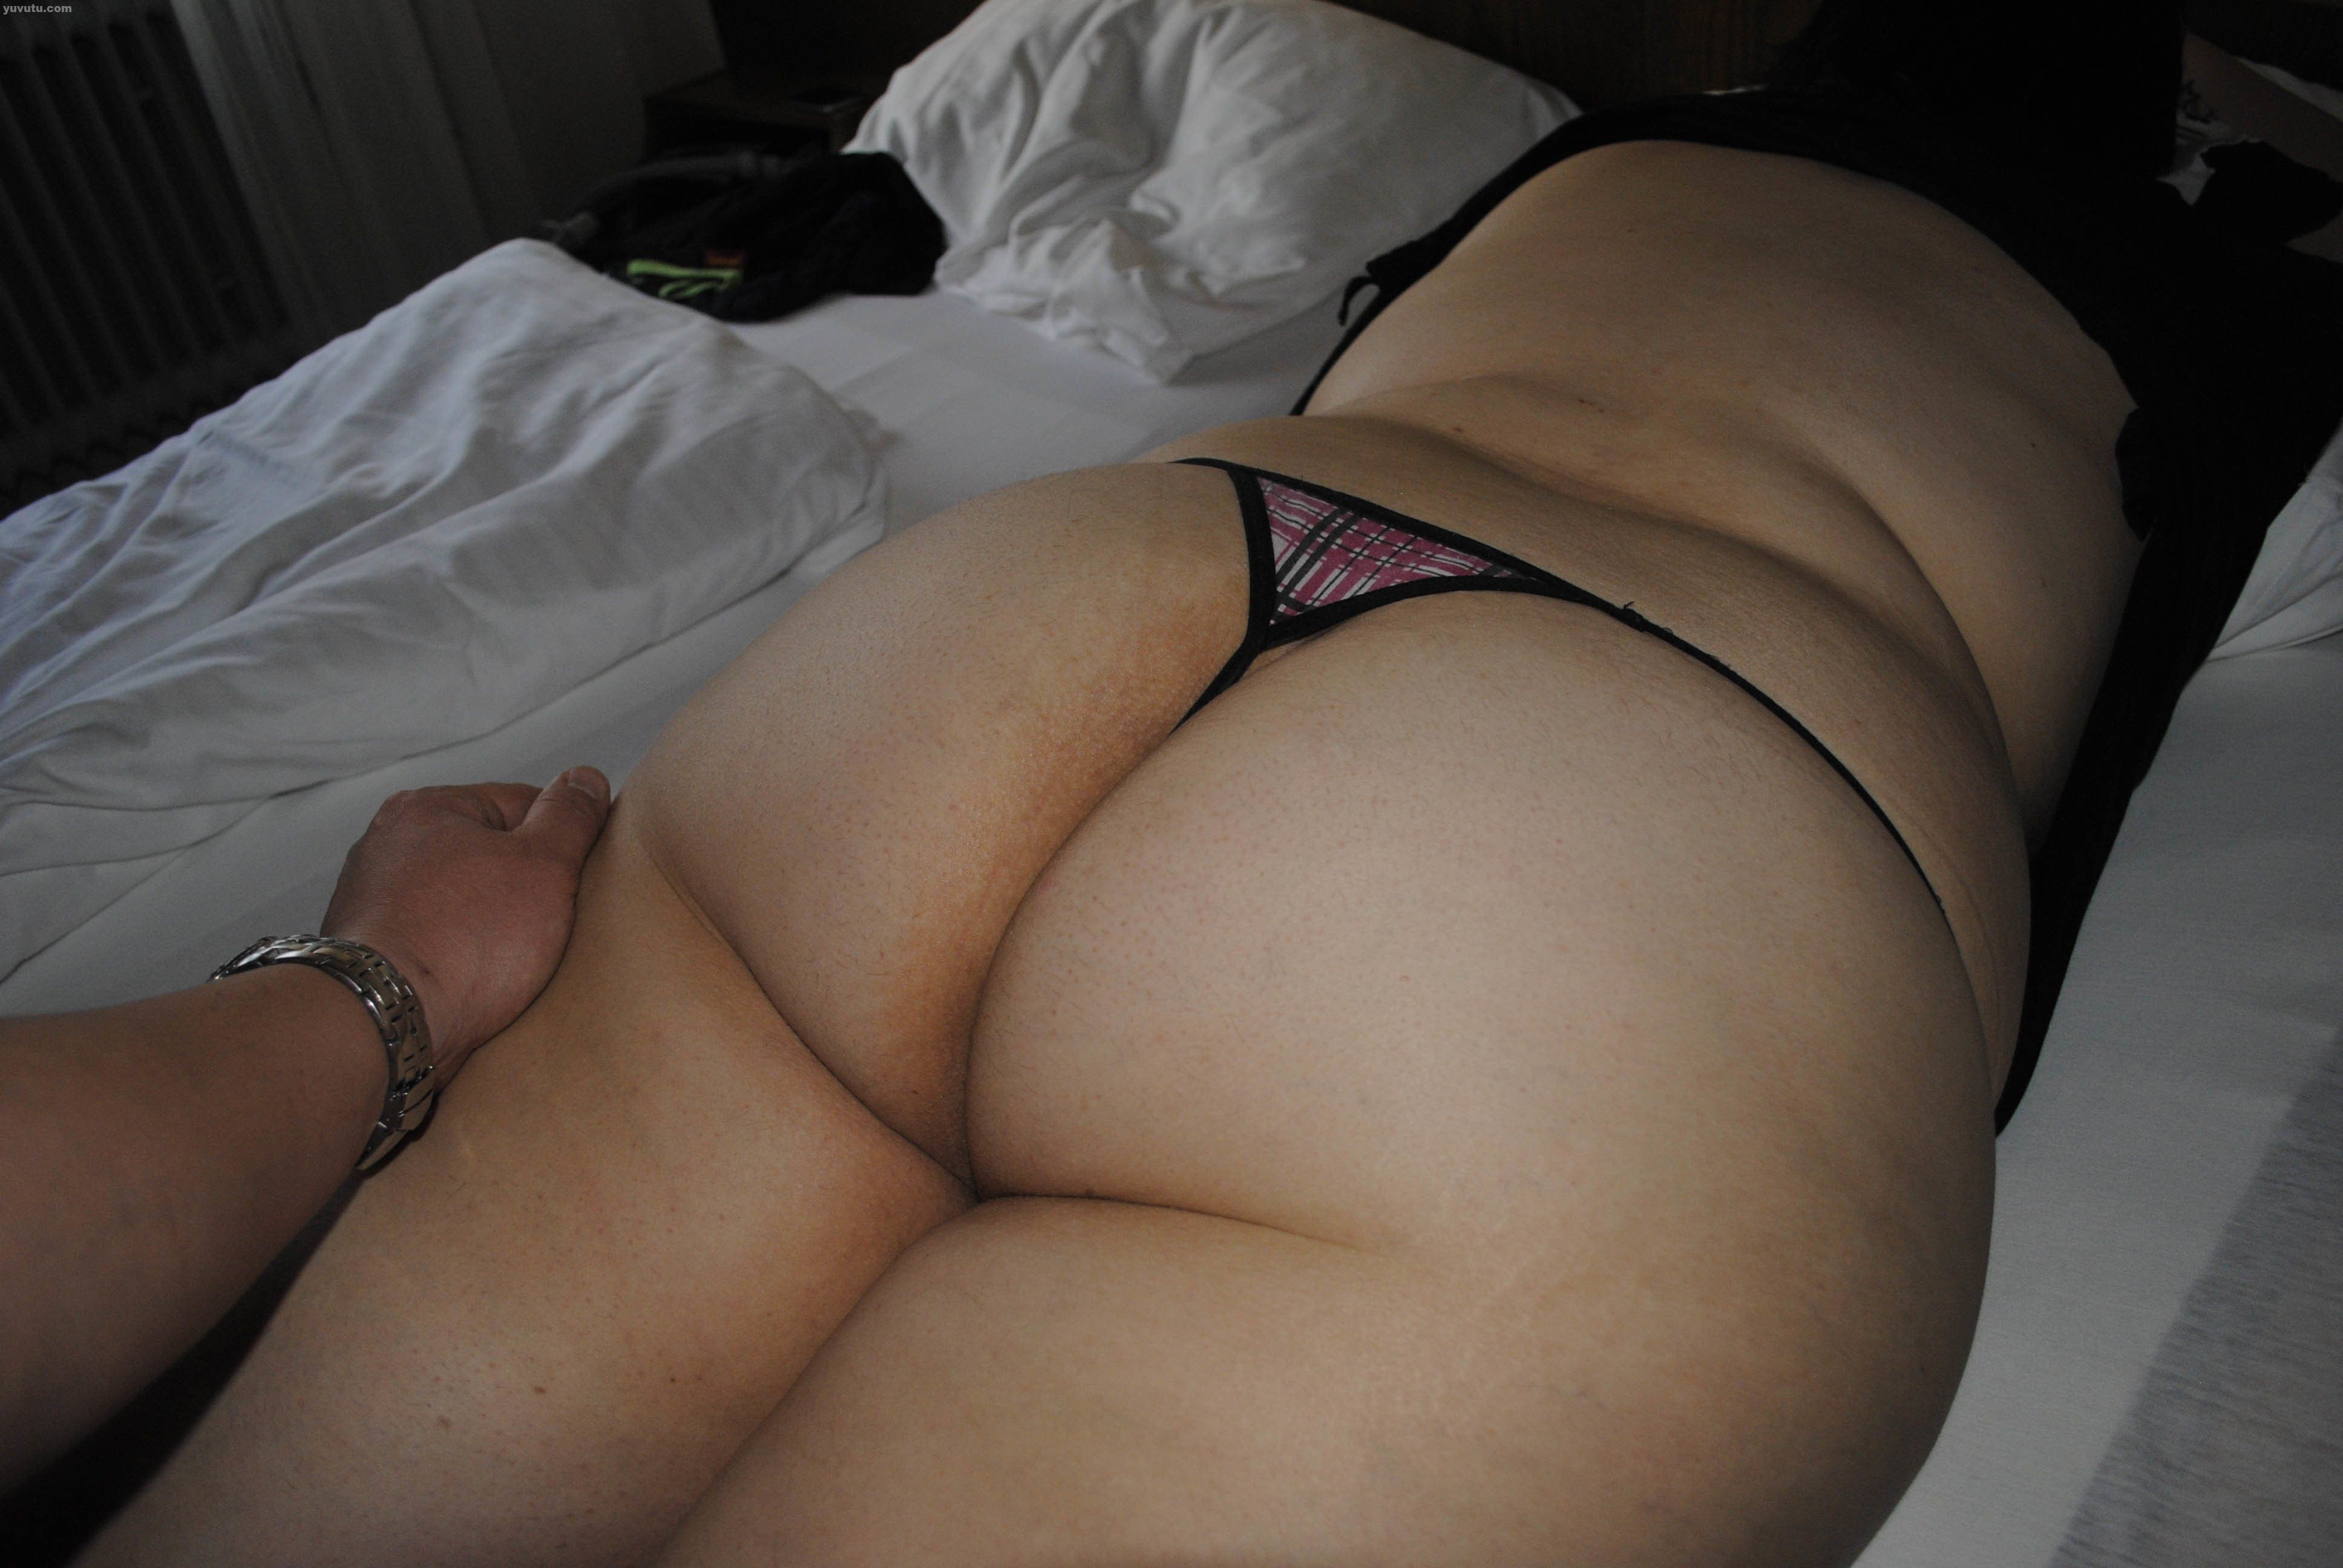 Pawg amateur Pawg